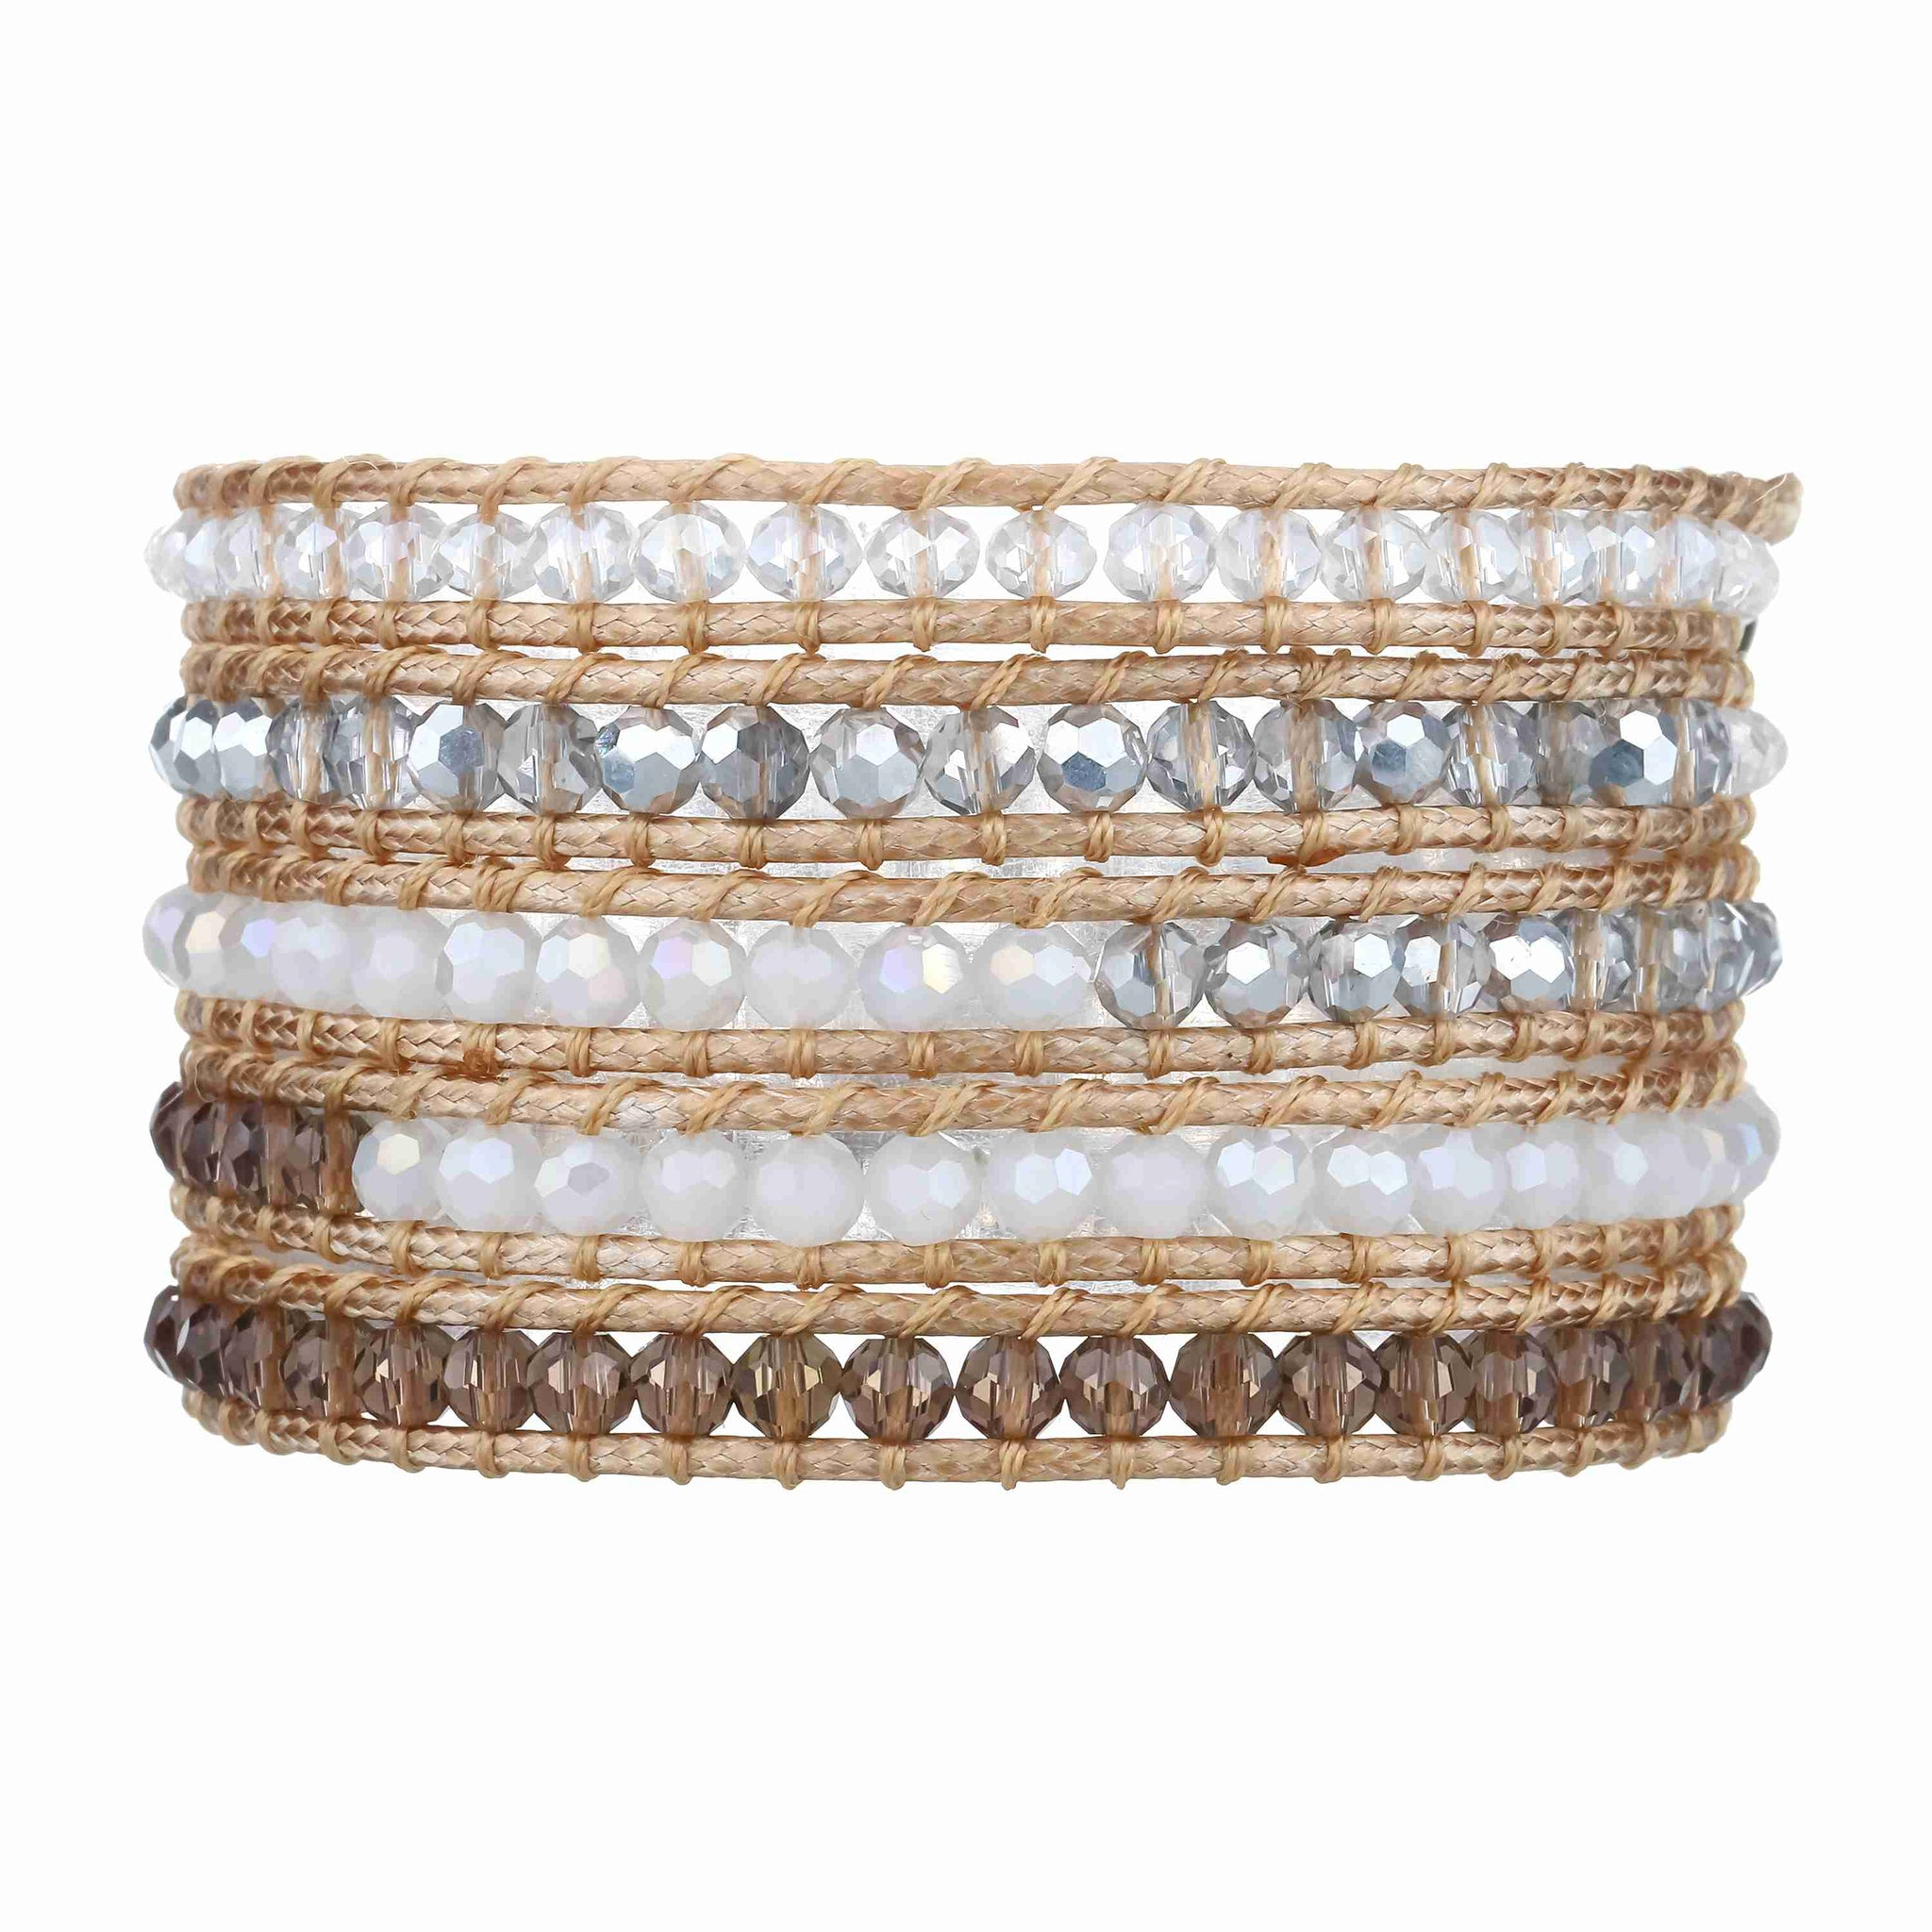 Vegan Wrap Bracelets Victoria Emerson Korean Style Blus With Necklace Short Sleeve Champagne Crystals And White Jade On Natural